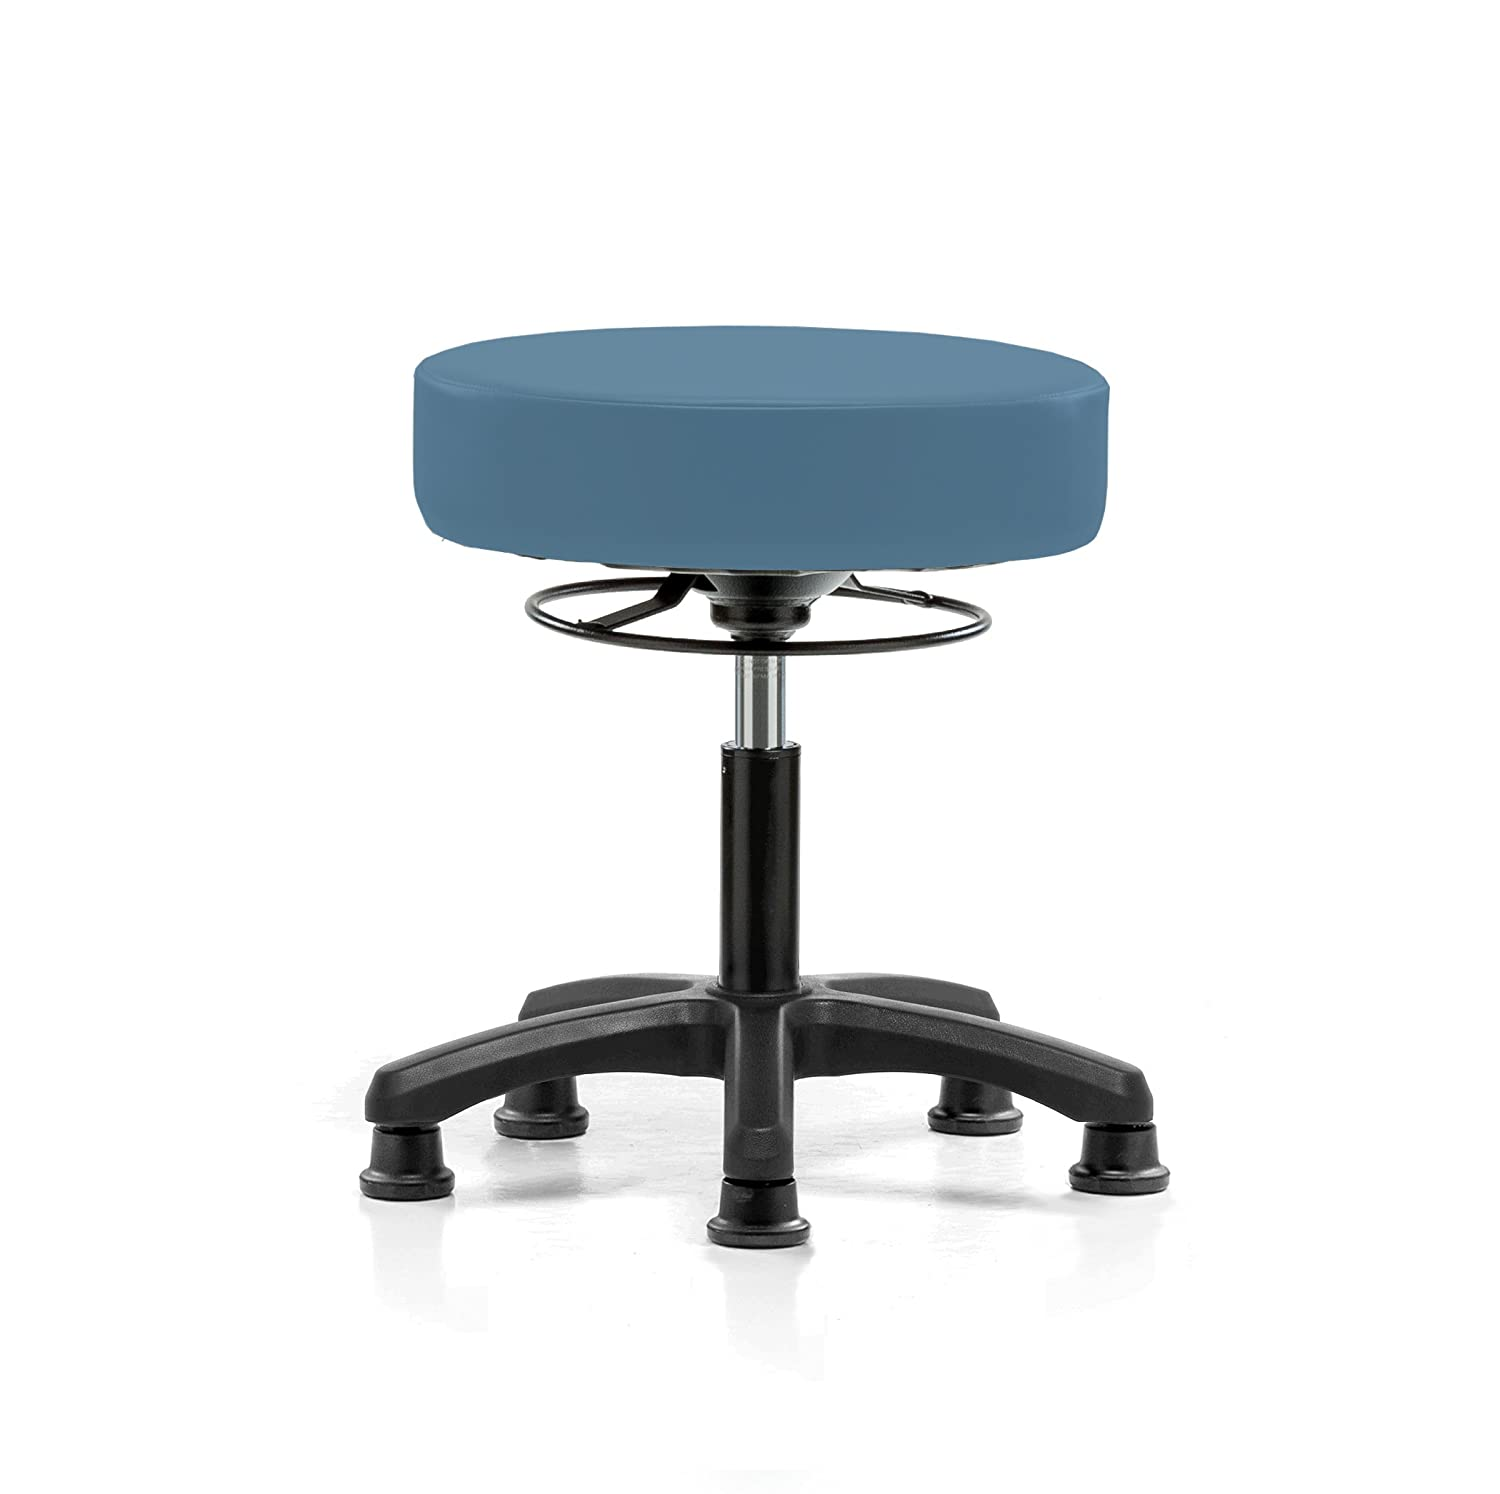 Perch Life Rolling Pneumatic Adjustable Stool For Lab Medical Office Spa Salon Kitchen Garage 18 - 23 (Glides/Burgundy Fabric)